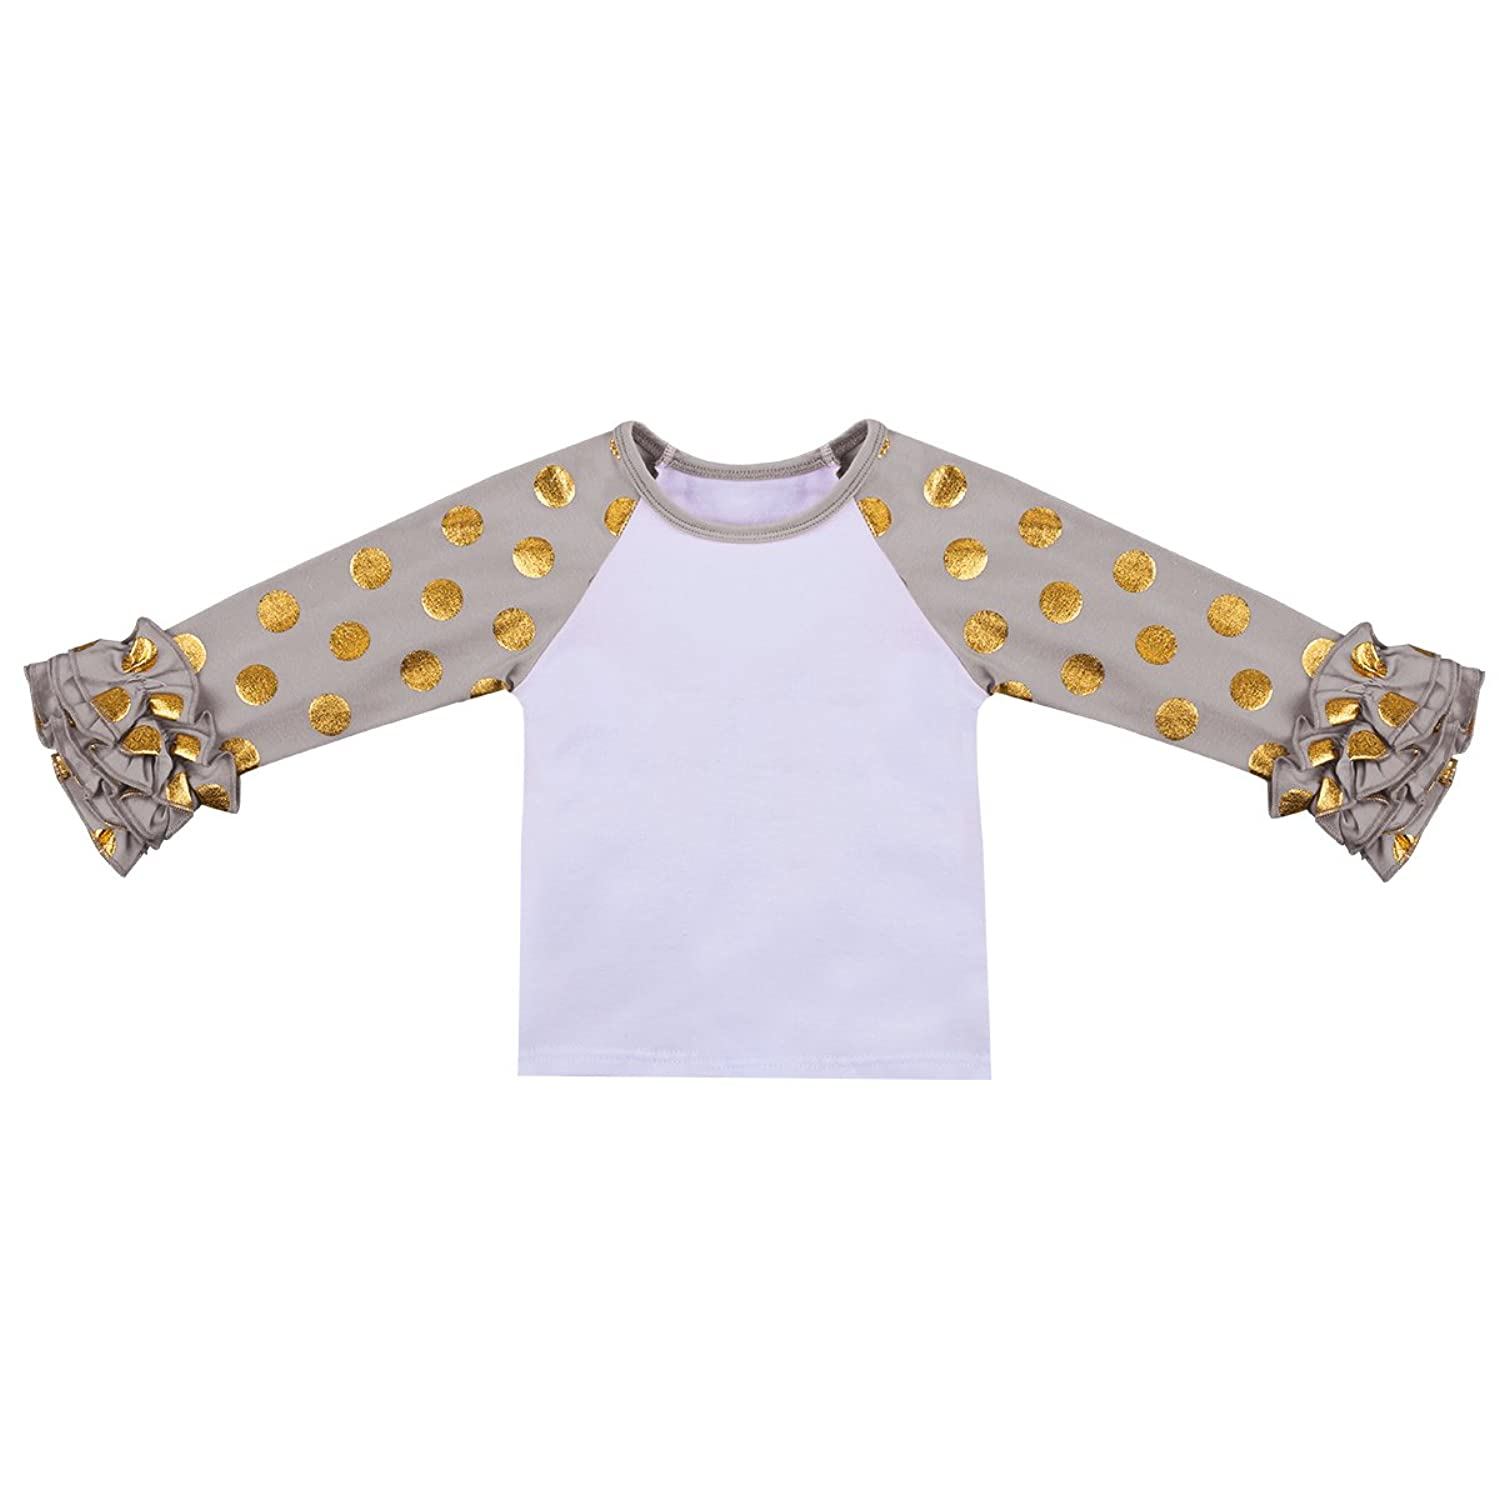 9e44eb90d Toddler baby kids girls casual long sleeve O-neck double icing ruffle t- shirt,infant girl layer ruffled undershirt tee birthday party photo shoot